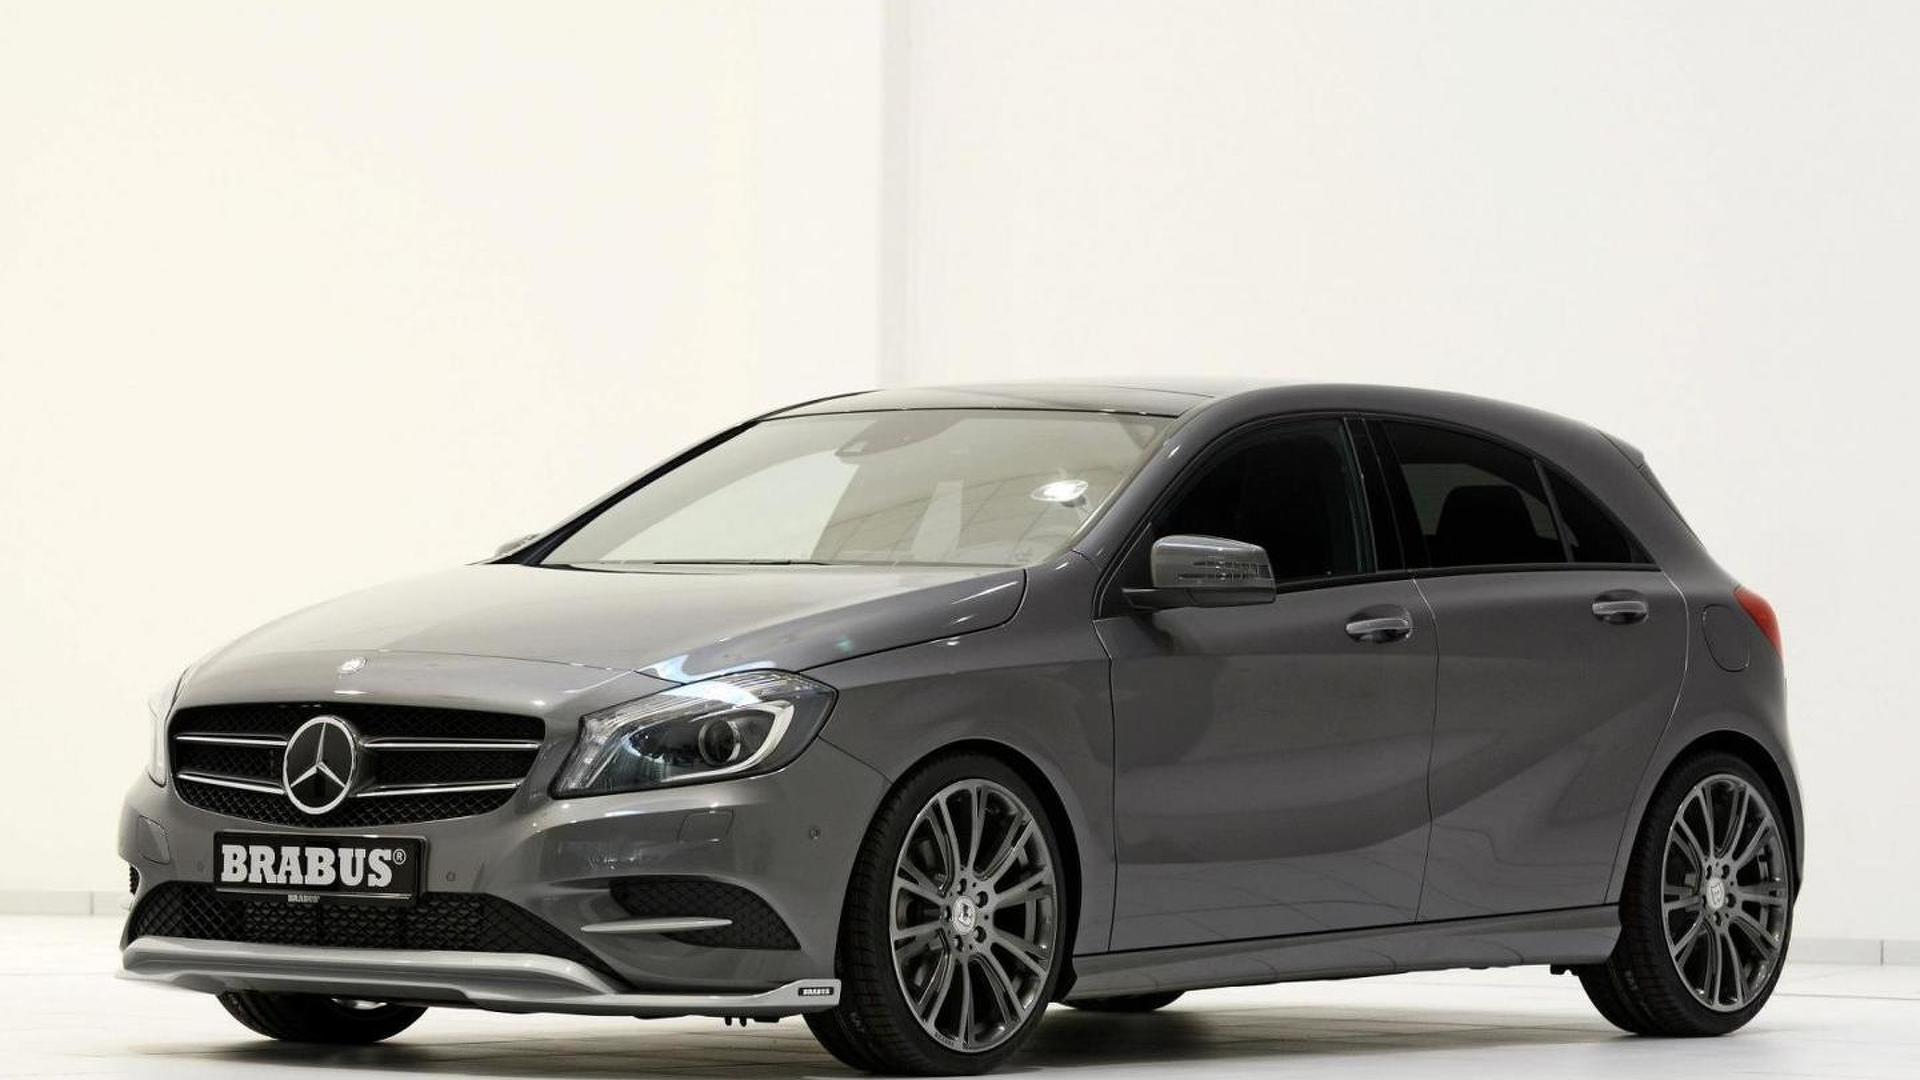 mercedes benz a200 cdi modified by brabus. Black Bedroom Furniture Sets. Home Design Ideas